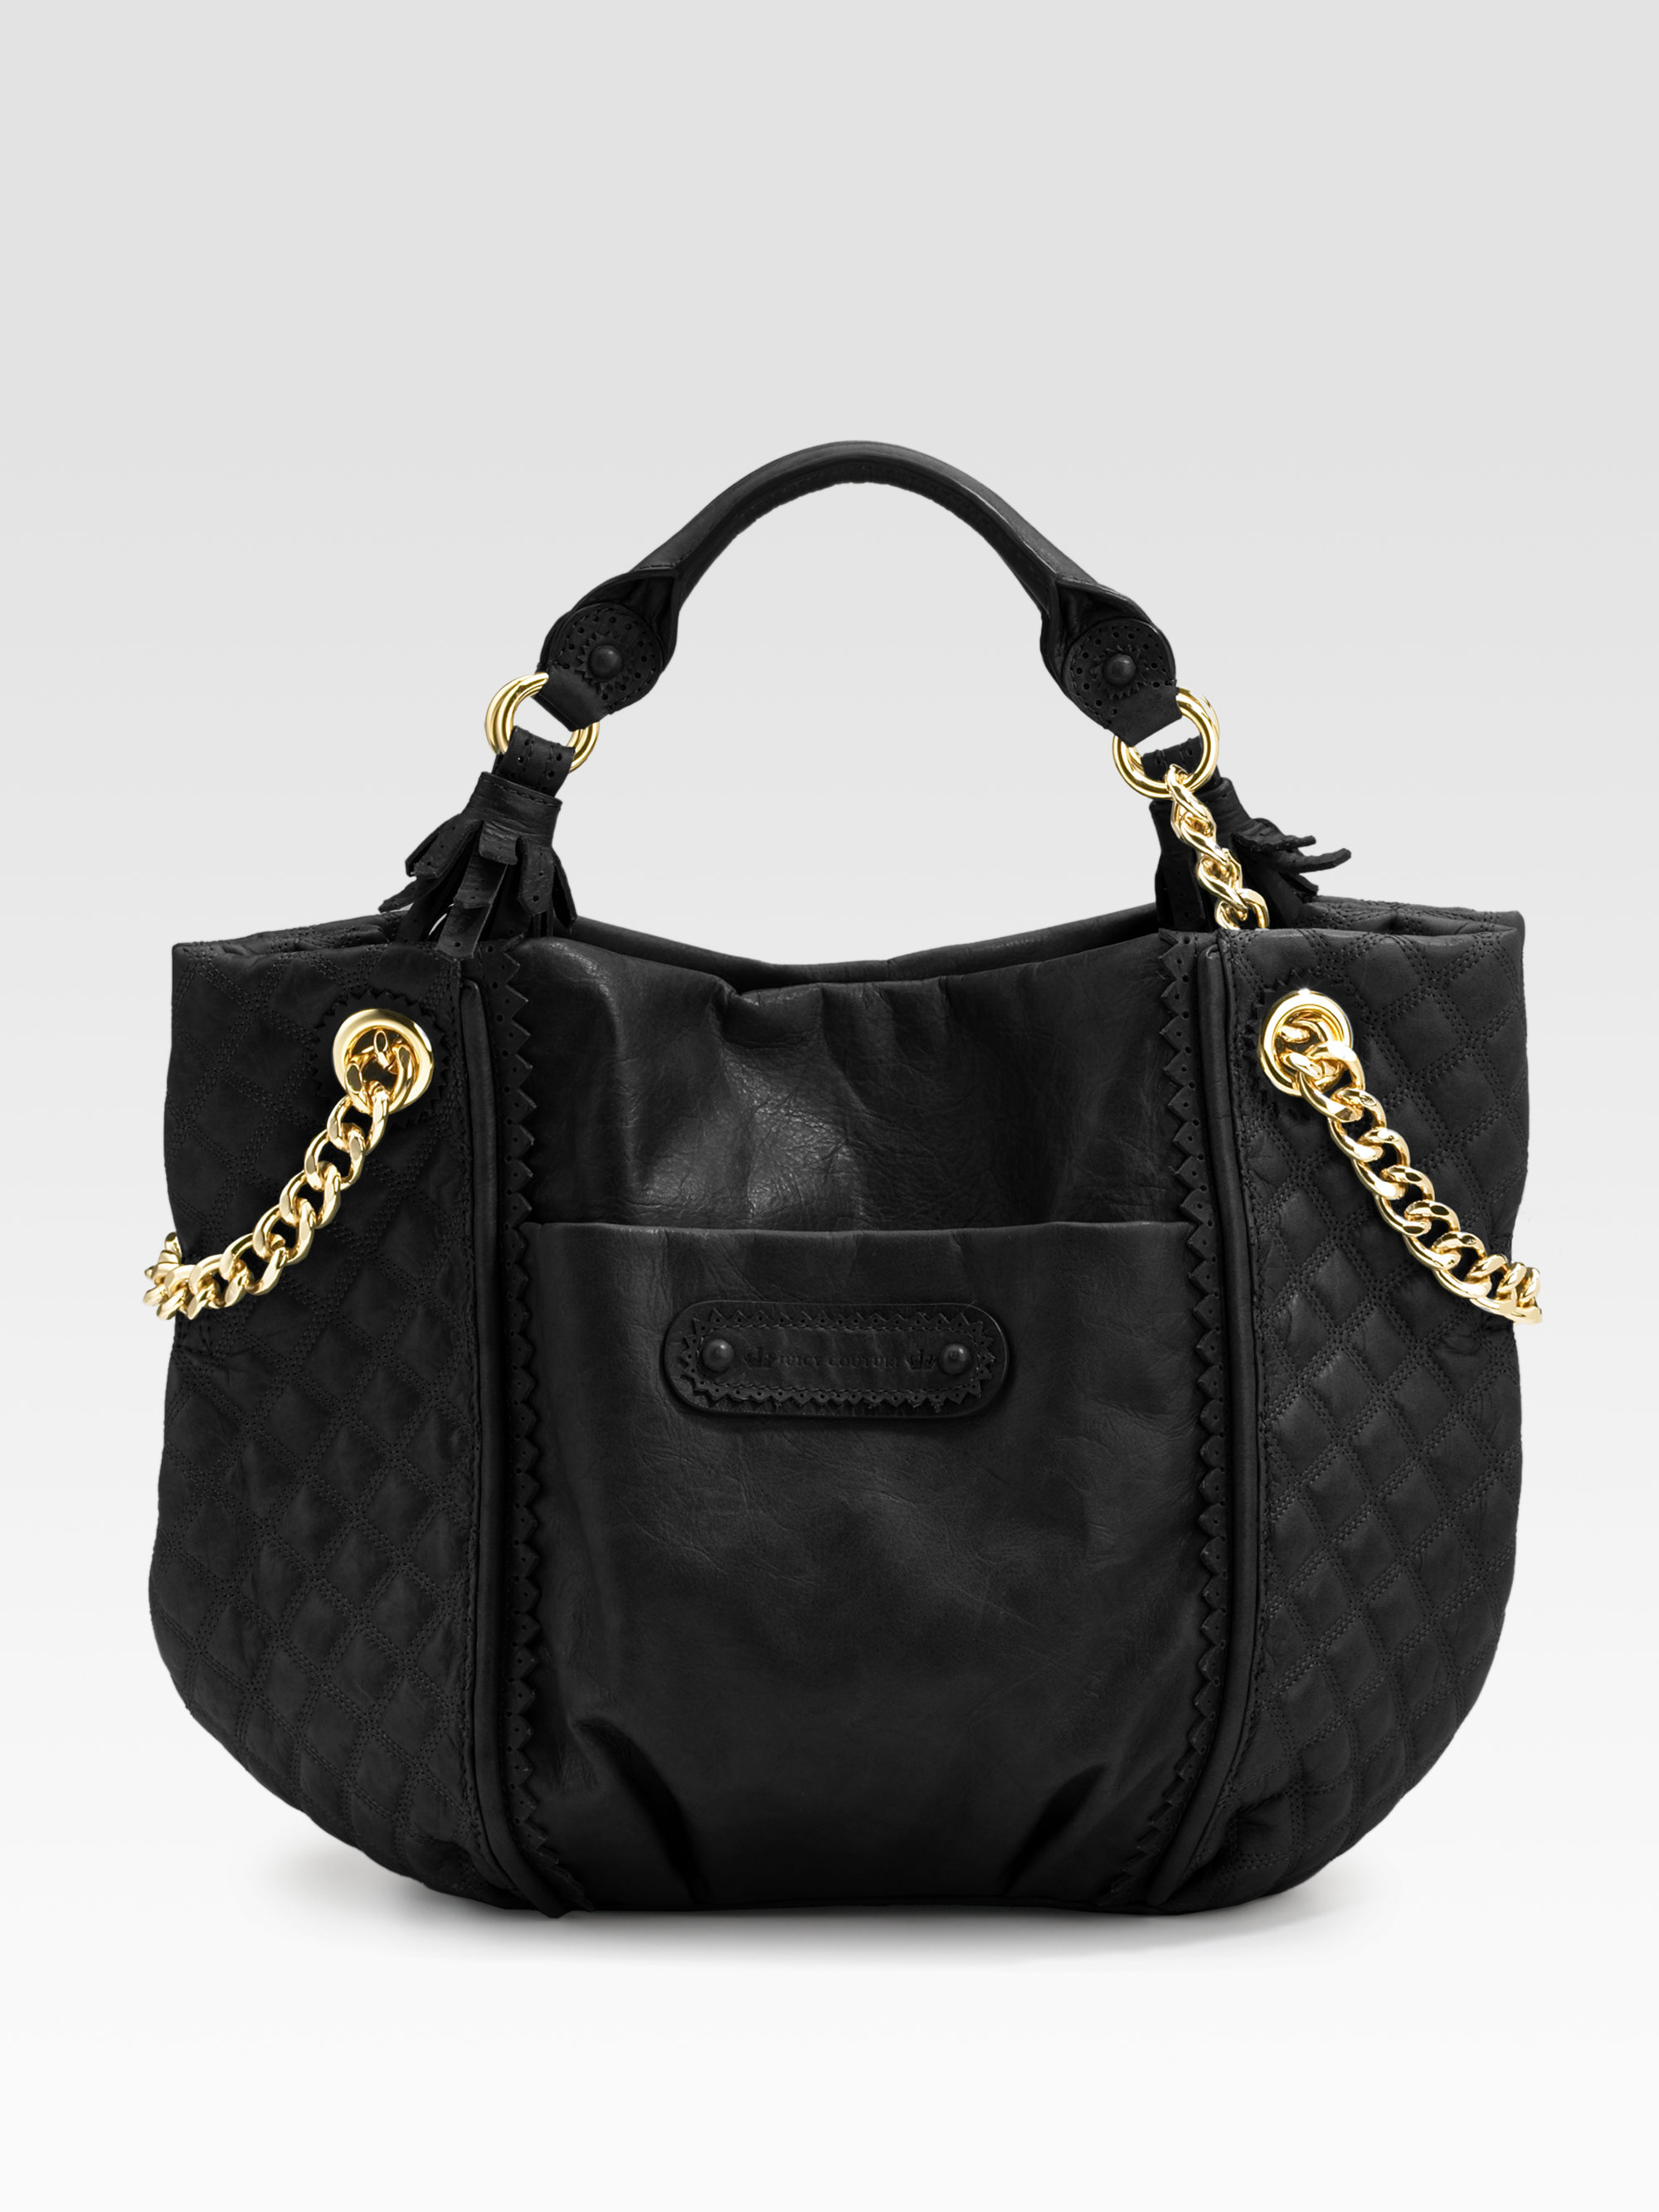 juicy couture brogue leather duchess tote bag in black lyst. Black Bedroom Furniture Sets. Home Design Ideas